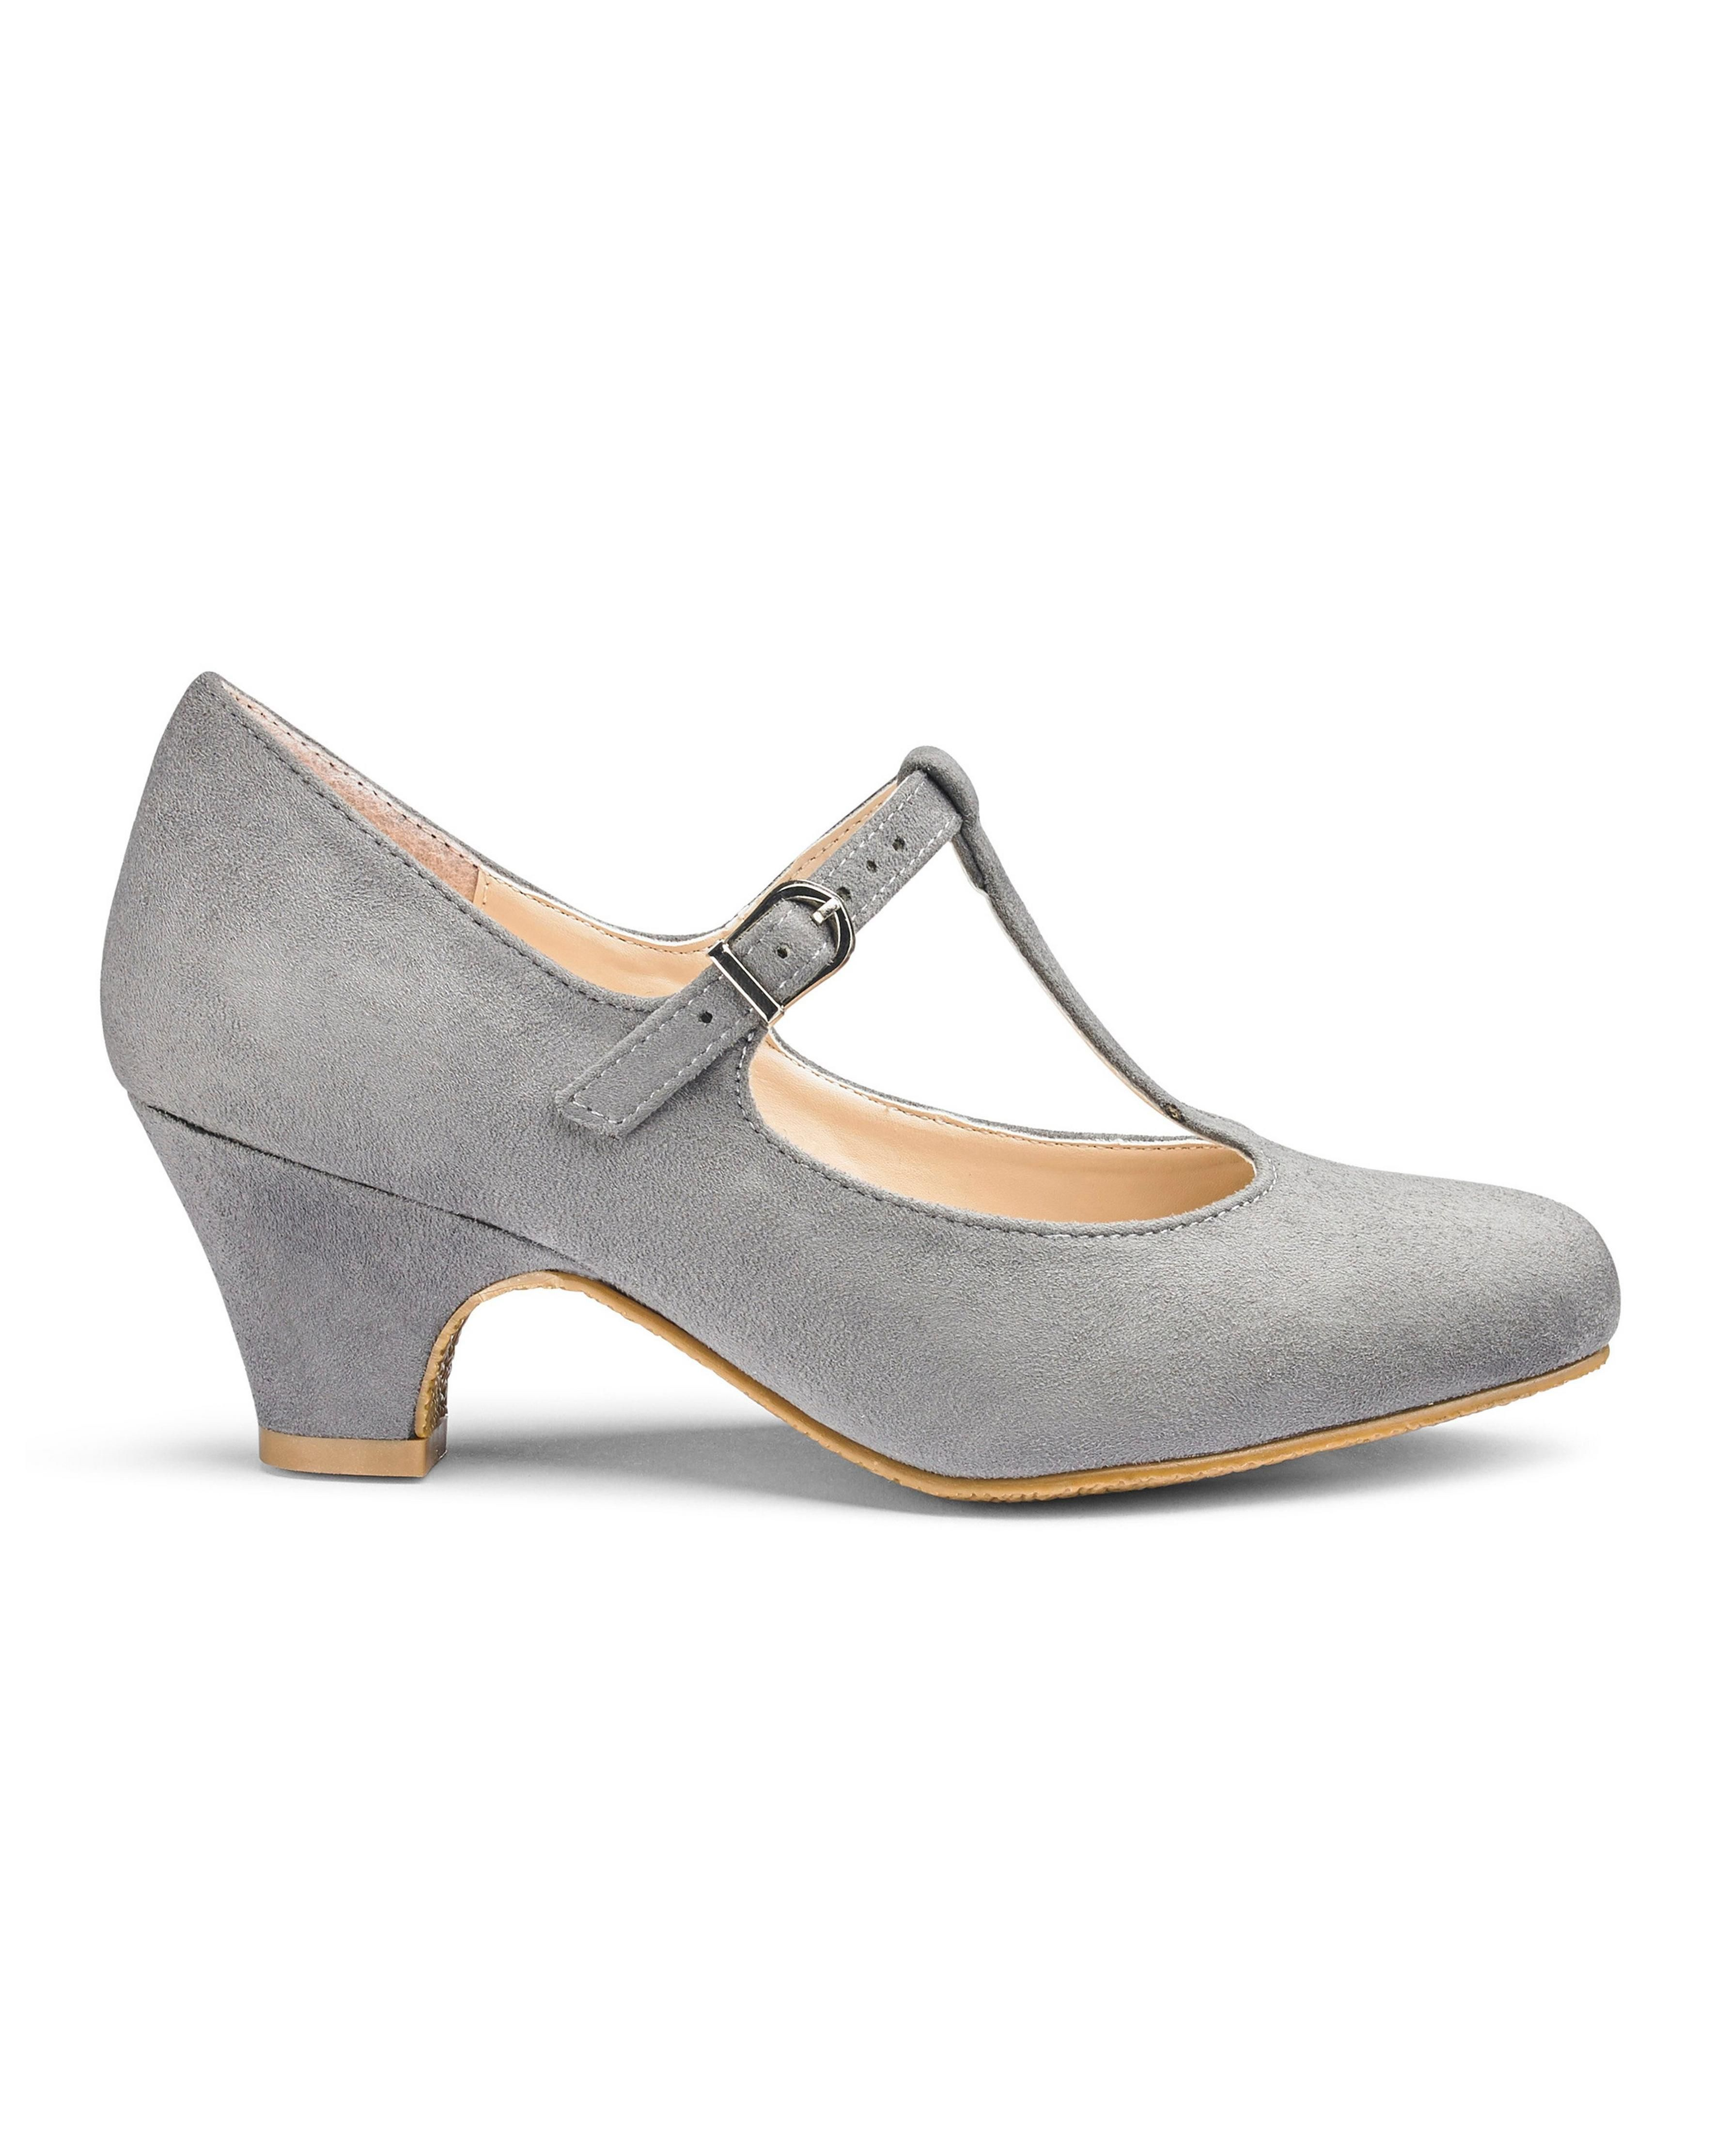 Heavenly Soles T Strap Shoes available in multiple colors ...